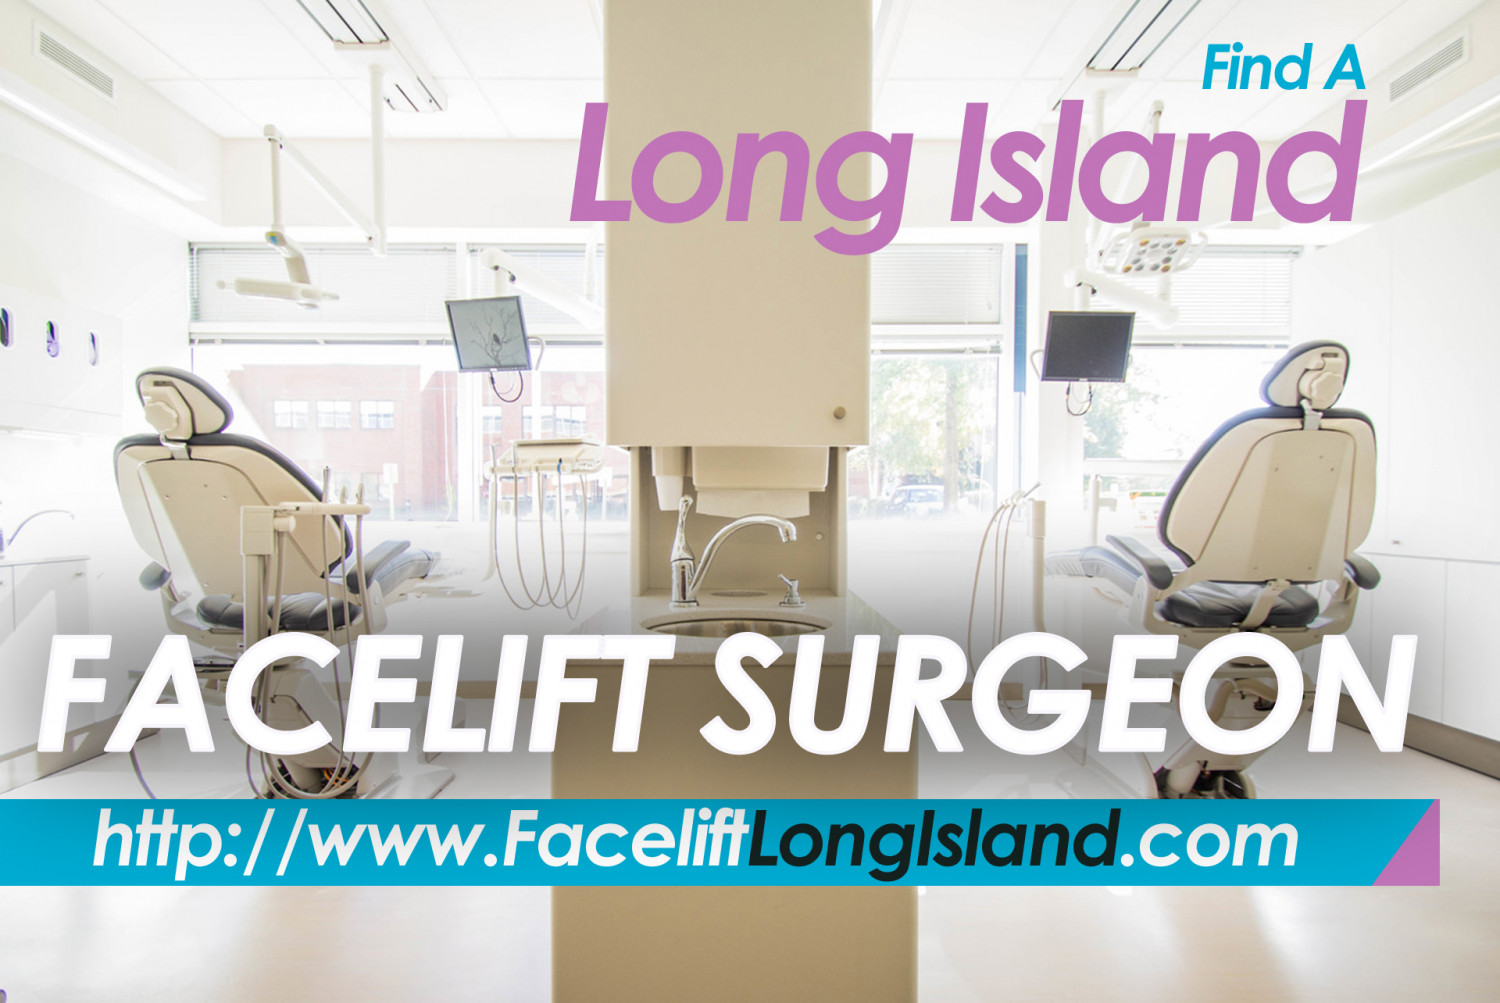 Facelift & Facial Plastic Surgeon in Long Island Infographic